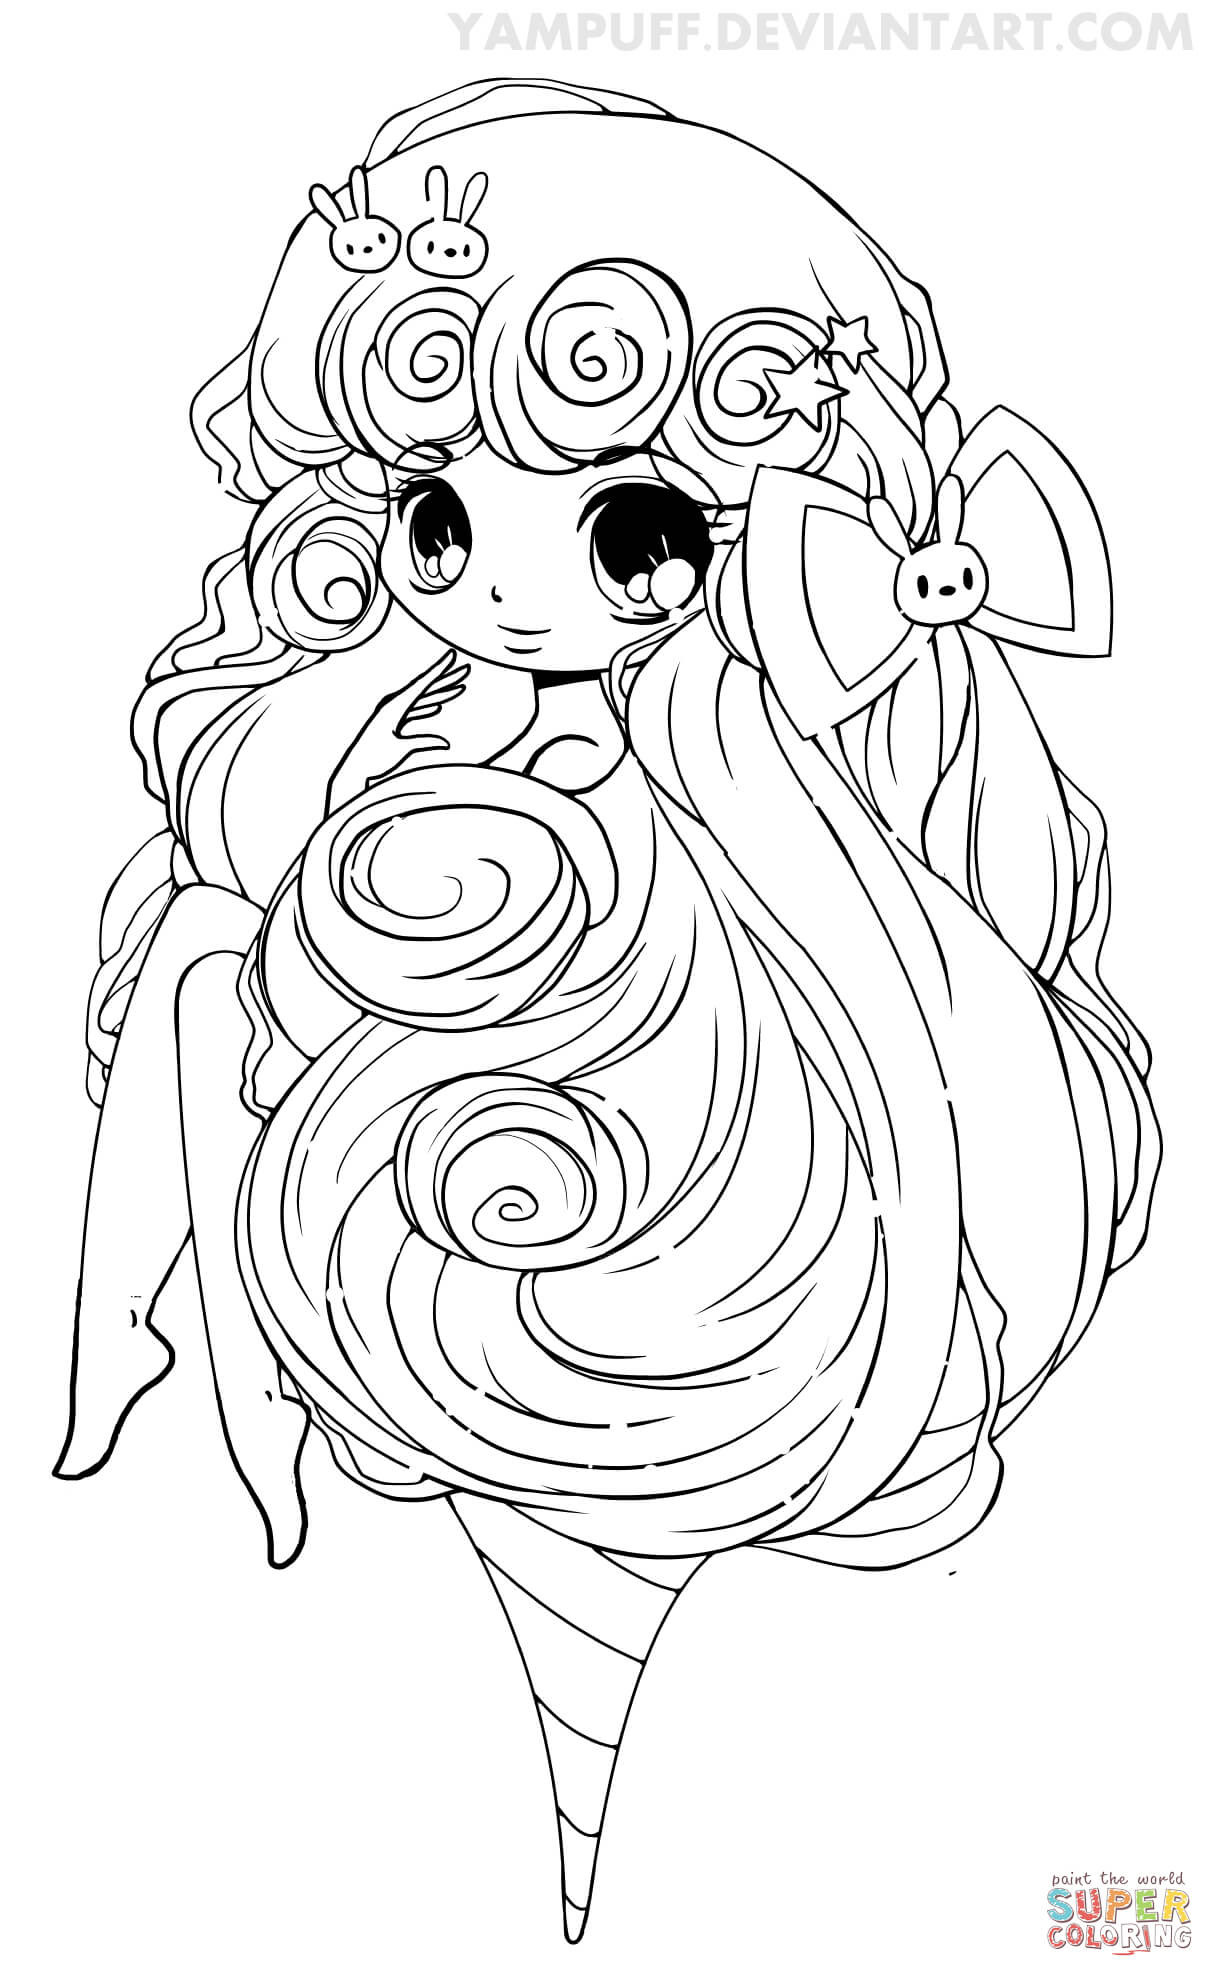 Chibi Girl Coloring Pages  Chibi Cotton Candy Girl coloring page